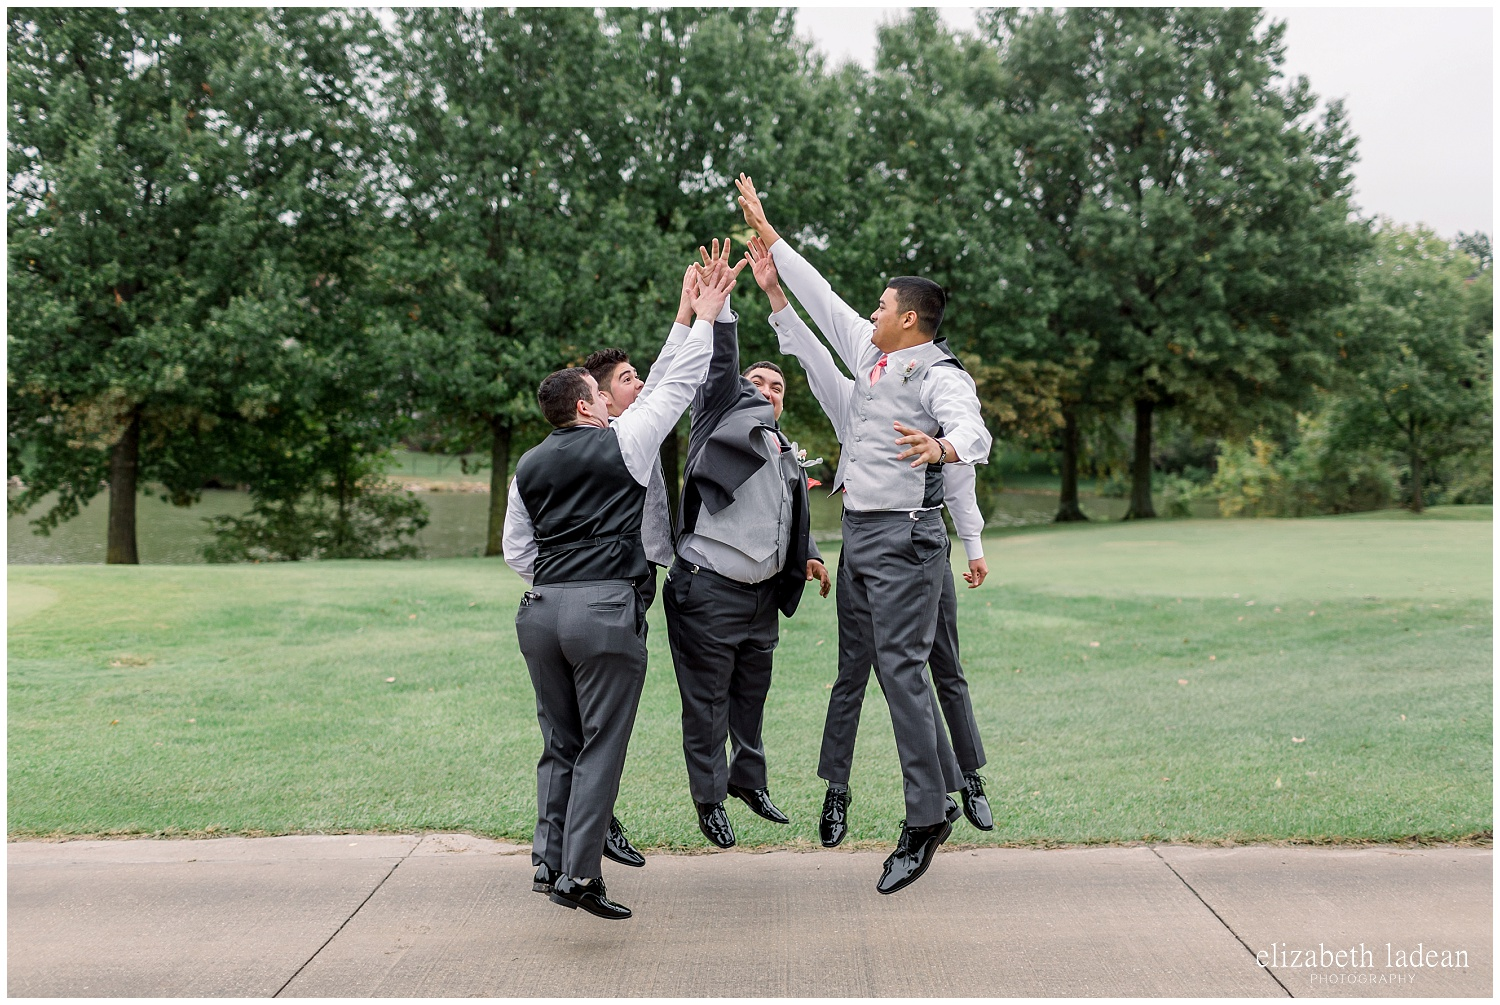 -behind-the-scenes-of-a-wedding-photographer-2018-elizabeth-ladean-photography-photo_3569.jpg